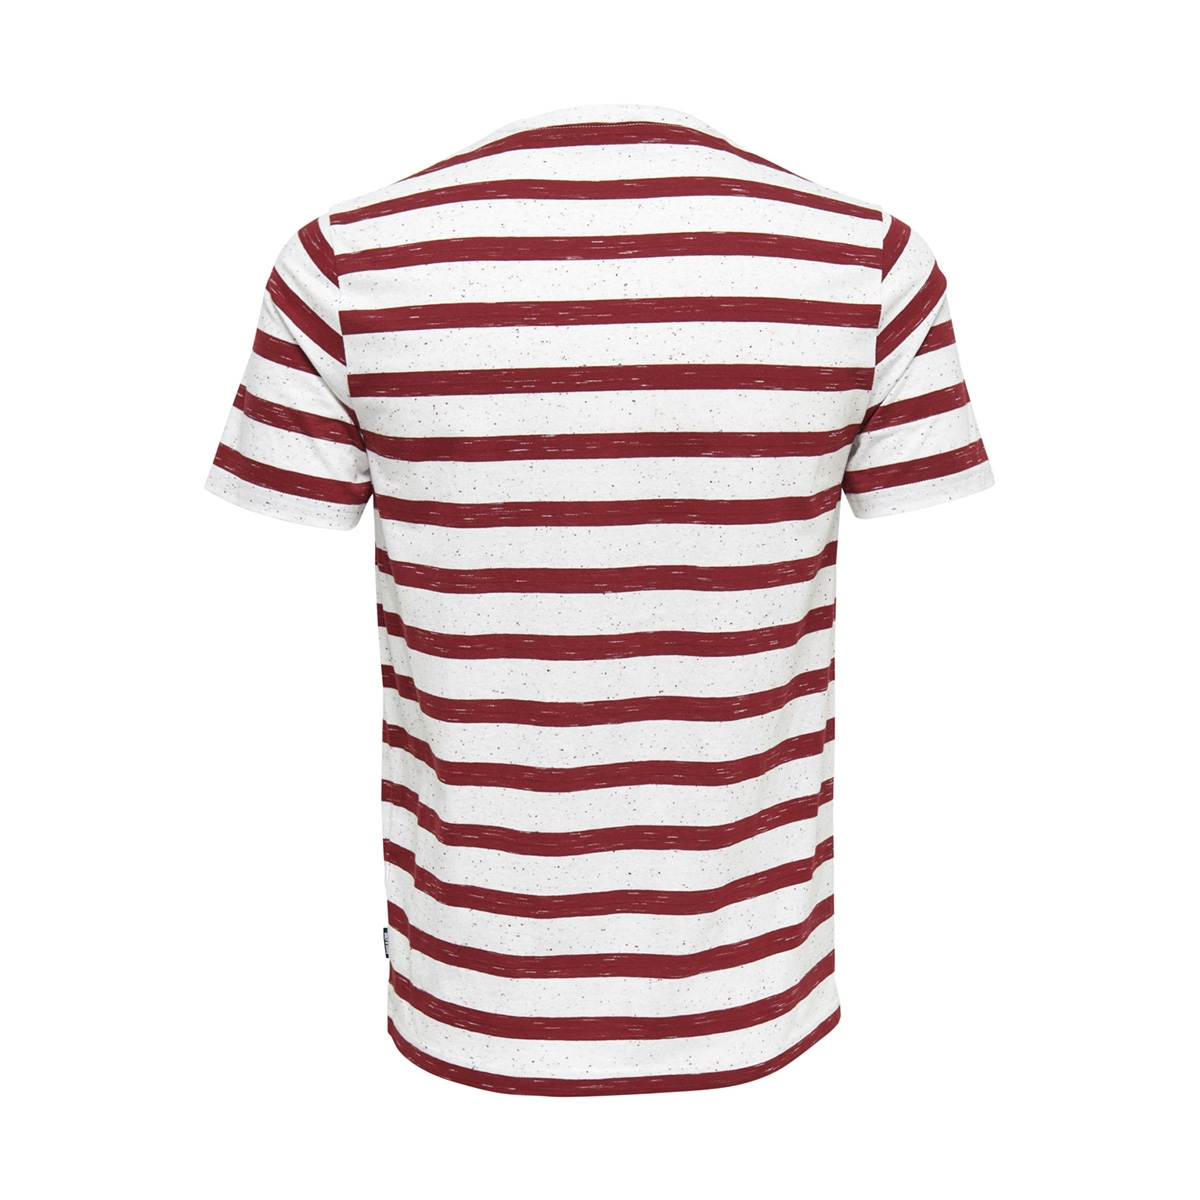 onselky stripe ss tee 22012161 only & sons t-shirt sun-dried tomato